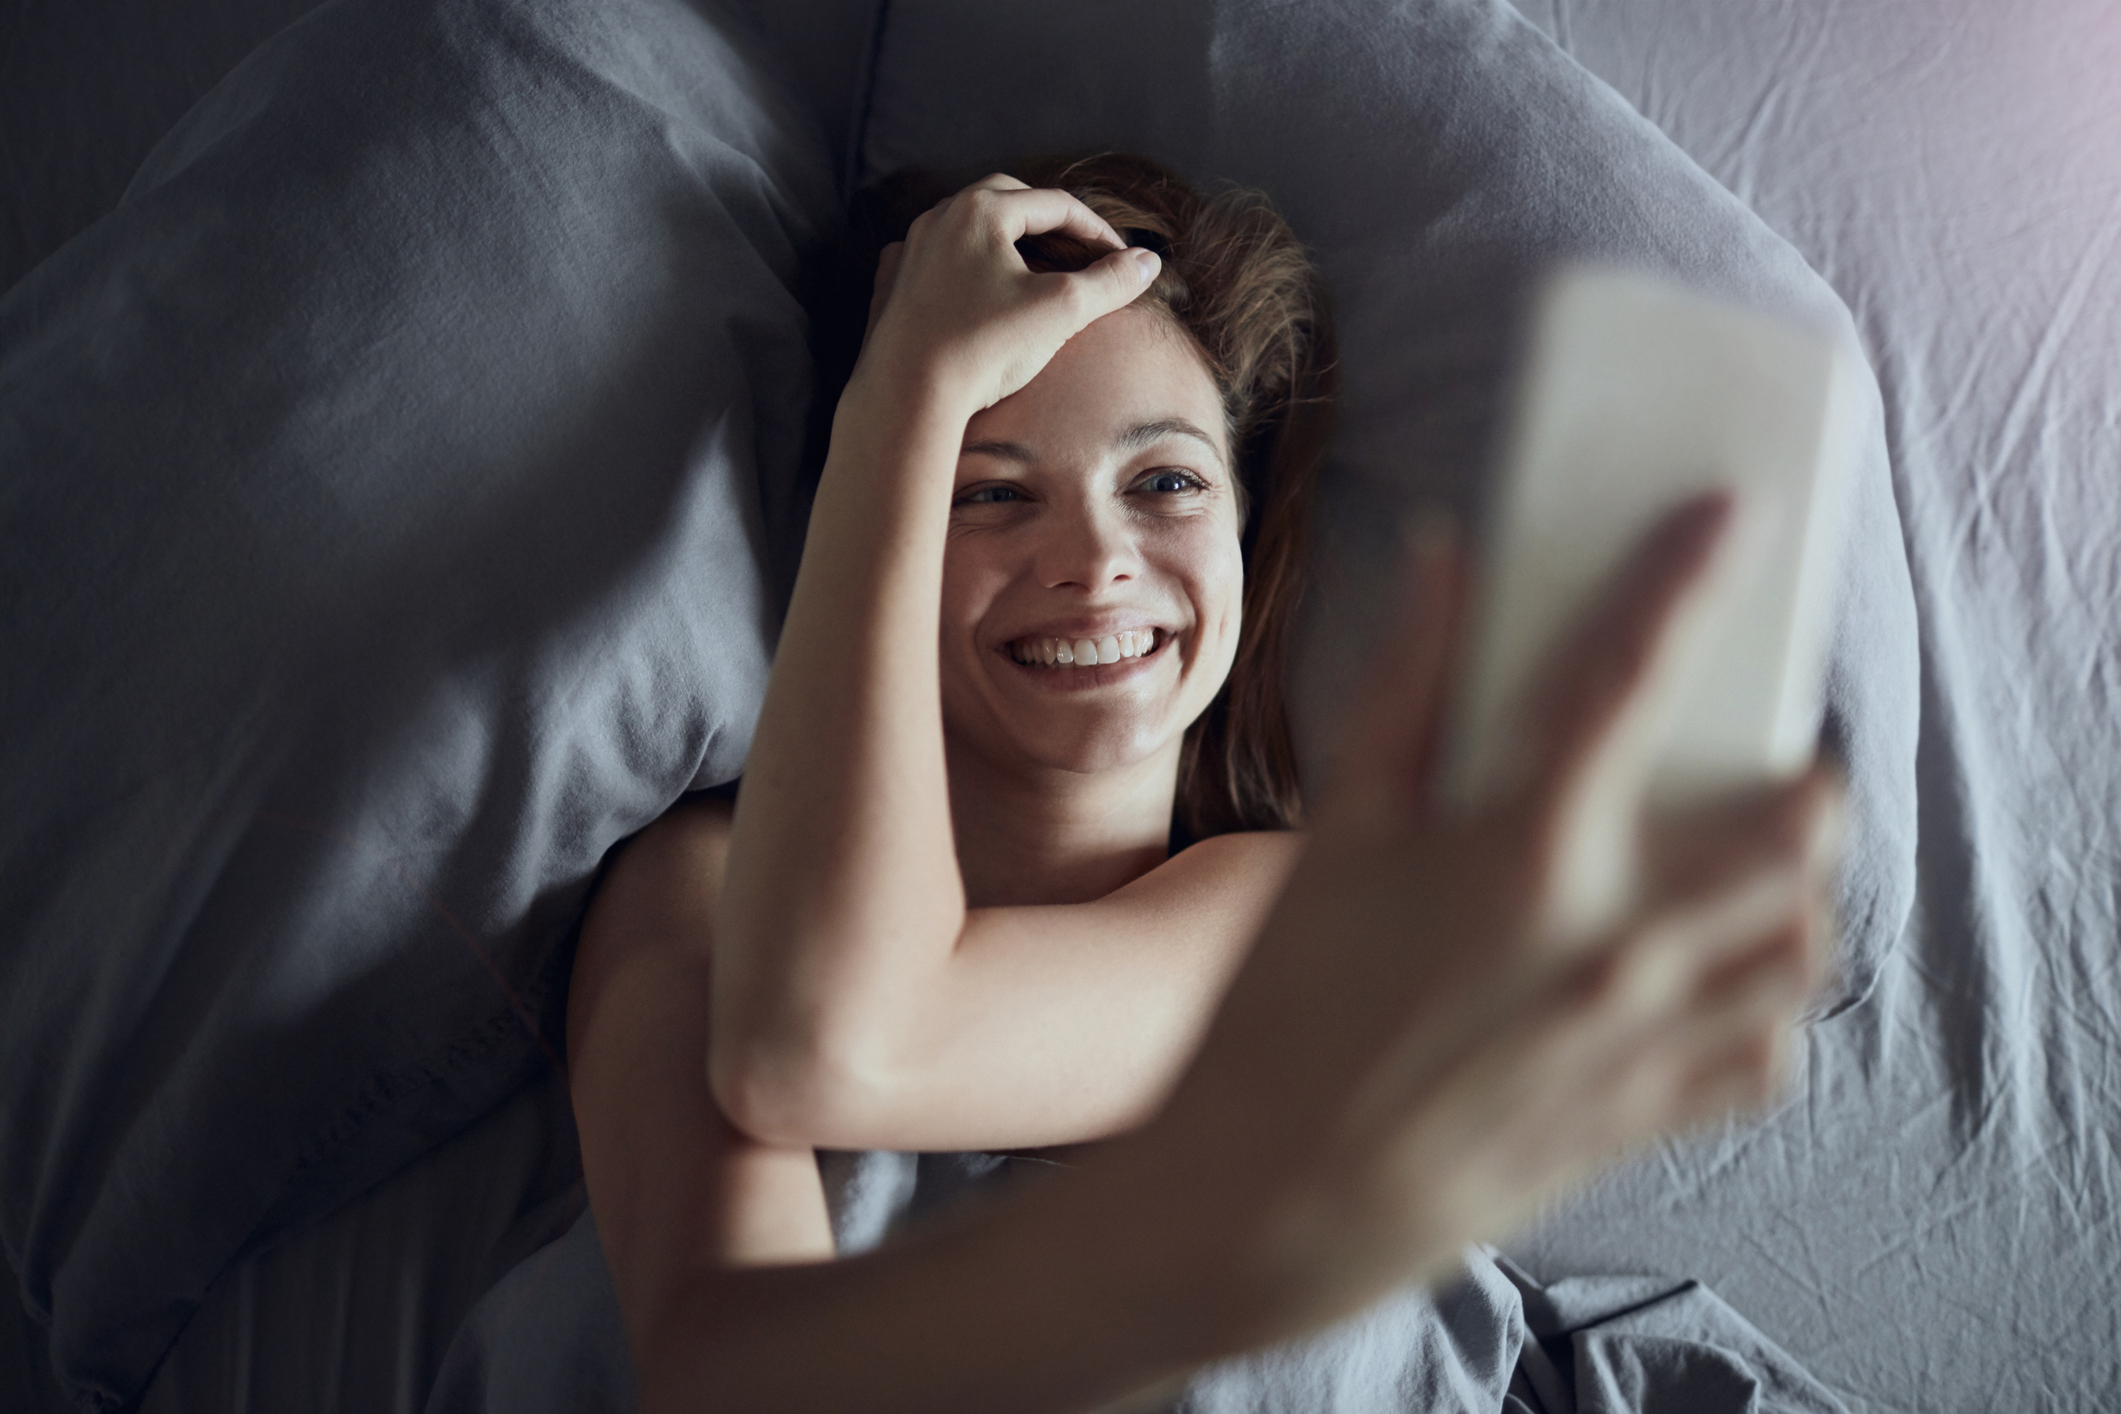 5 sex positions (yes, positions!) to try if you're in a long-distance relationship